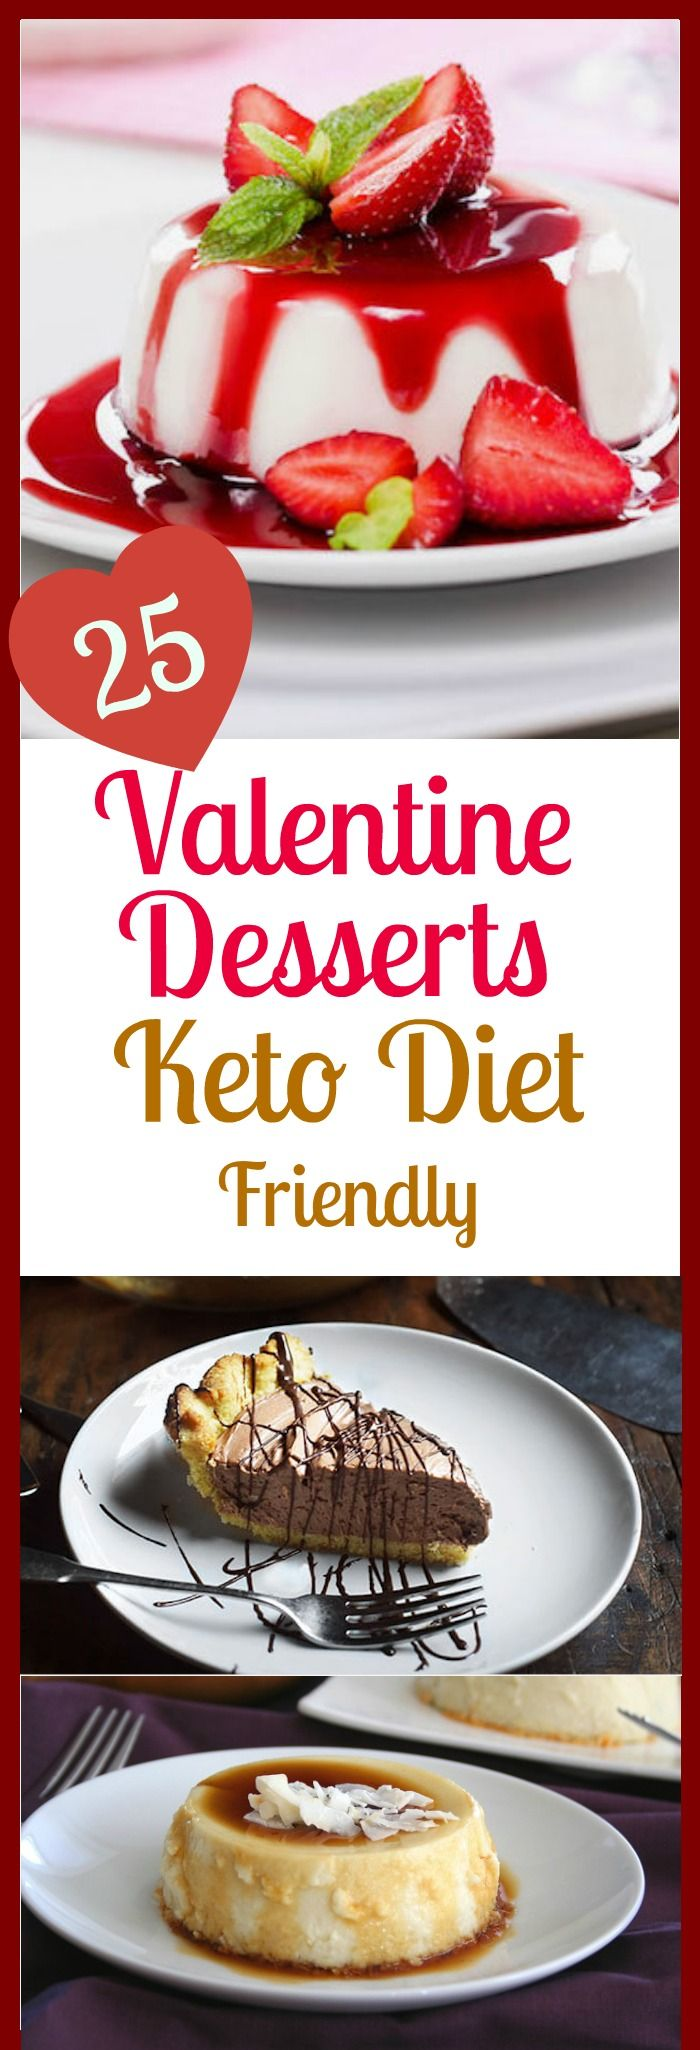 25 AWESOME KETO DIET FRIENDLY DESSERTS Complement Your Valentine's Day Dinner plans with these awesome Valentine dessert ideas.  These recipes are Gluten Free, Low Carb, and are Keto Diet Friendly.  Download the complete recipe book for free at http://ket